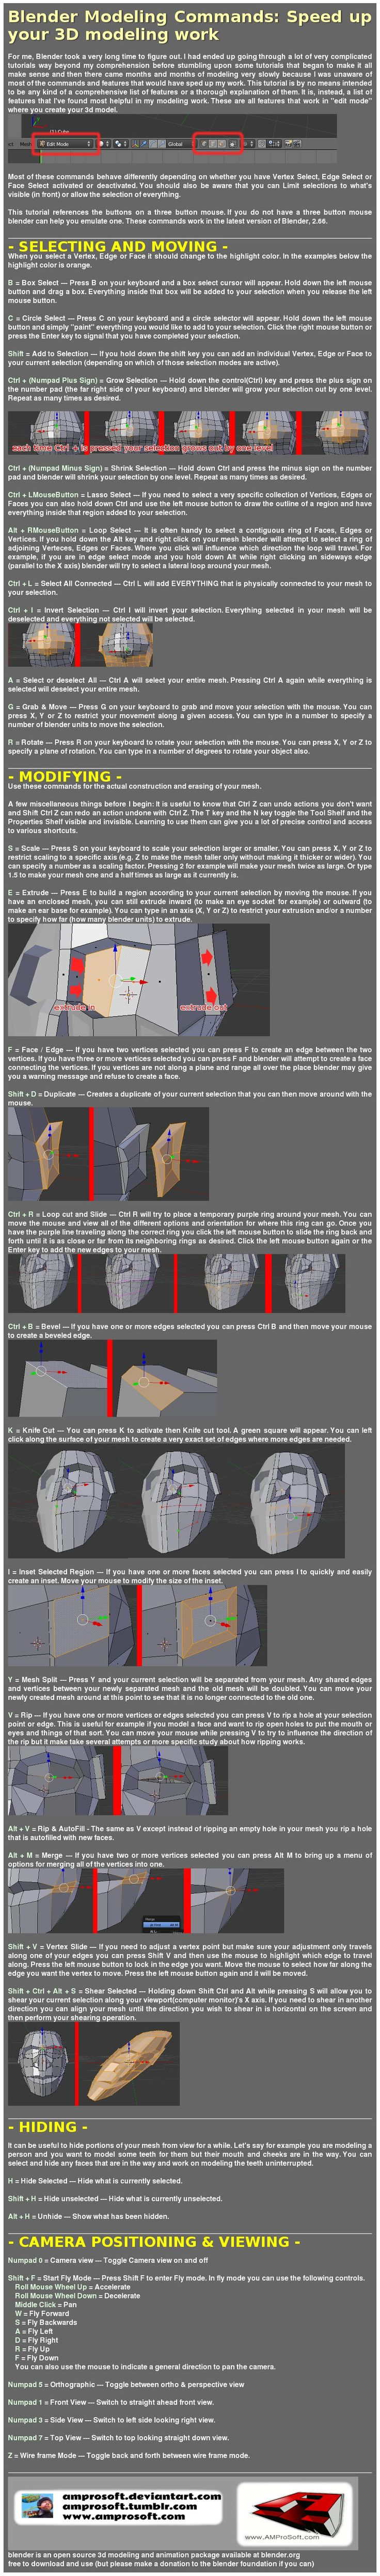 Blender Modeling Commands by AMProSoft.deviantart.com on @deviantART